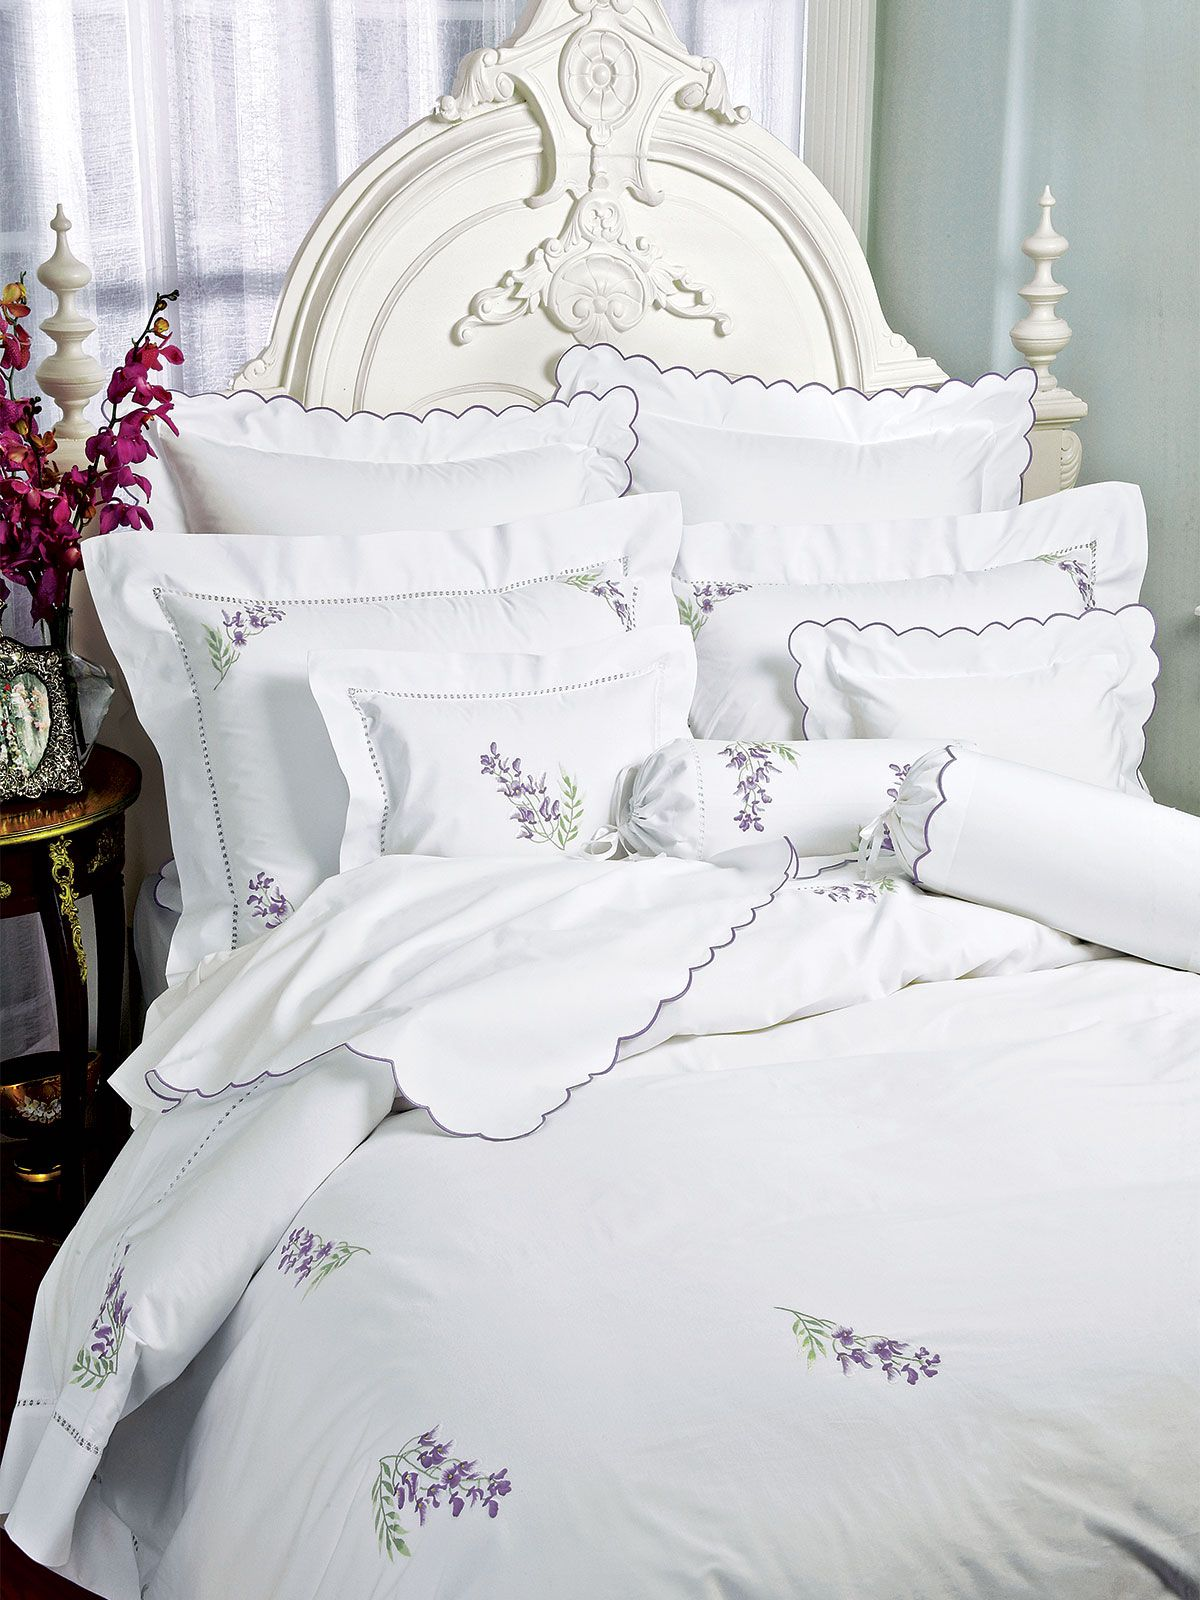 Bianca Luxury Bed Sheets The Softest Most Inviting Egyptian Cotton Percale Is Painstakenly Woven In Italy With Your Comfort Mind